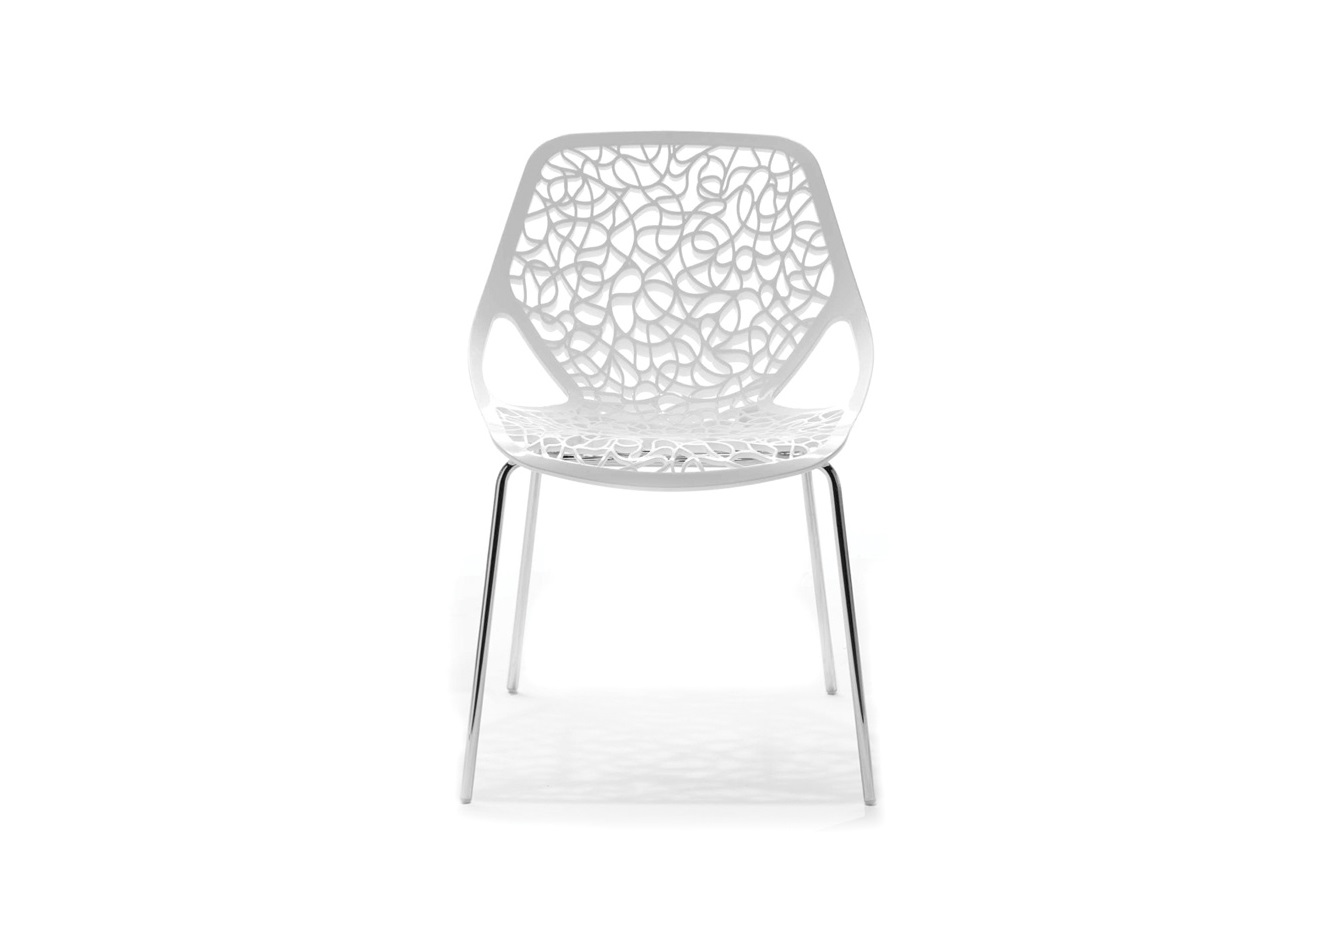 CAPRICE CHAIR Stackable plastic chair, designed by Marcello Ziliani 540x540x800mm Price: 780.000 VND